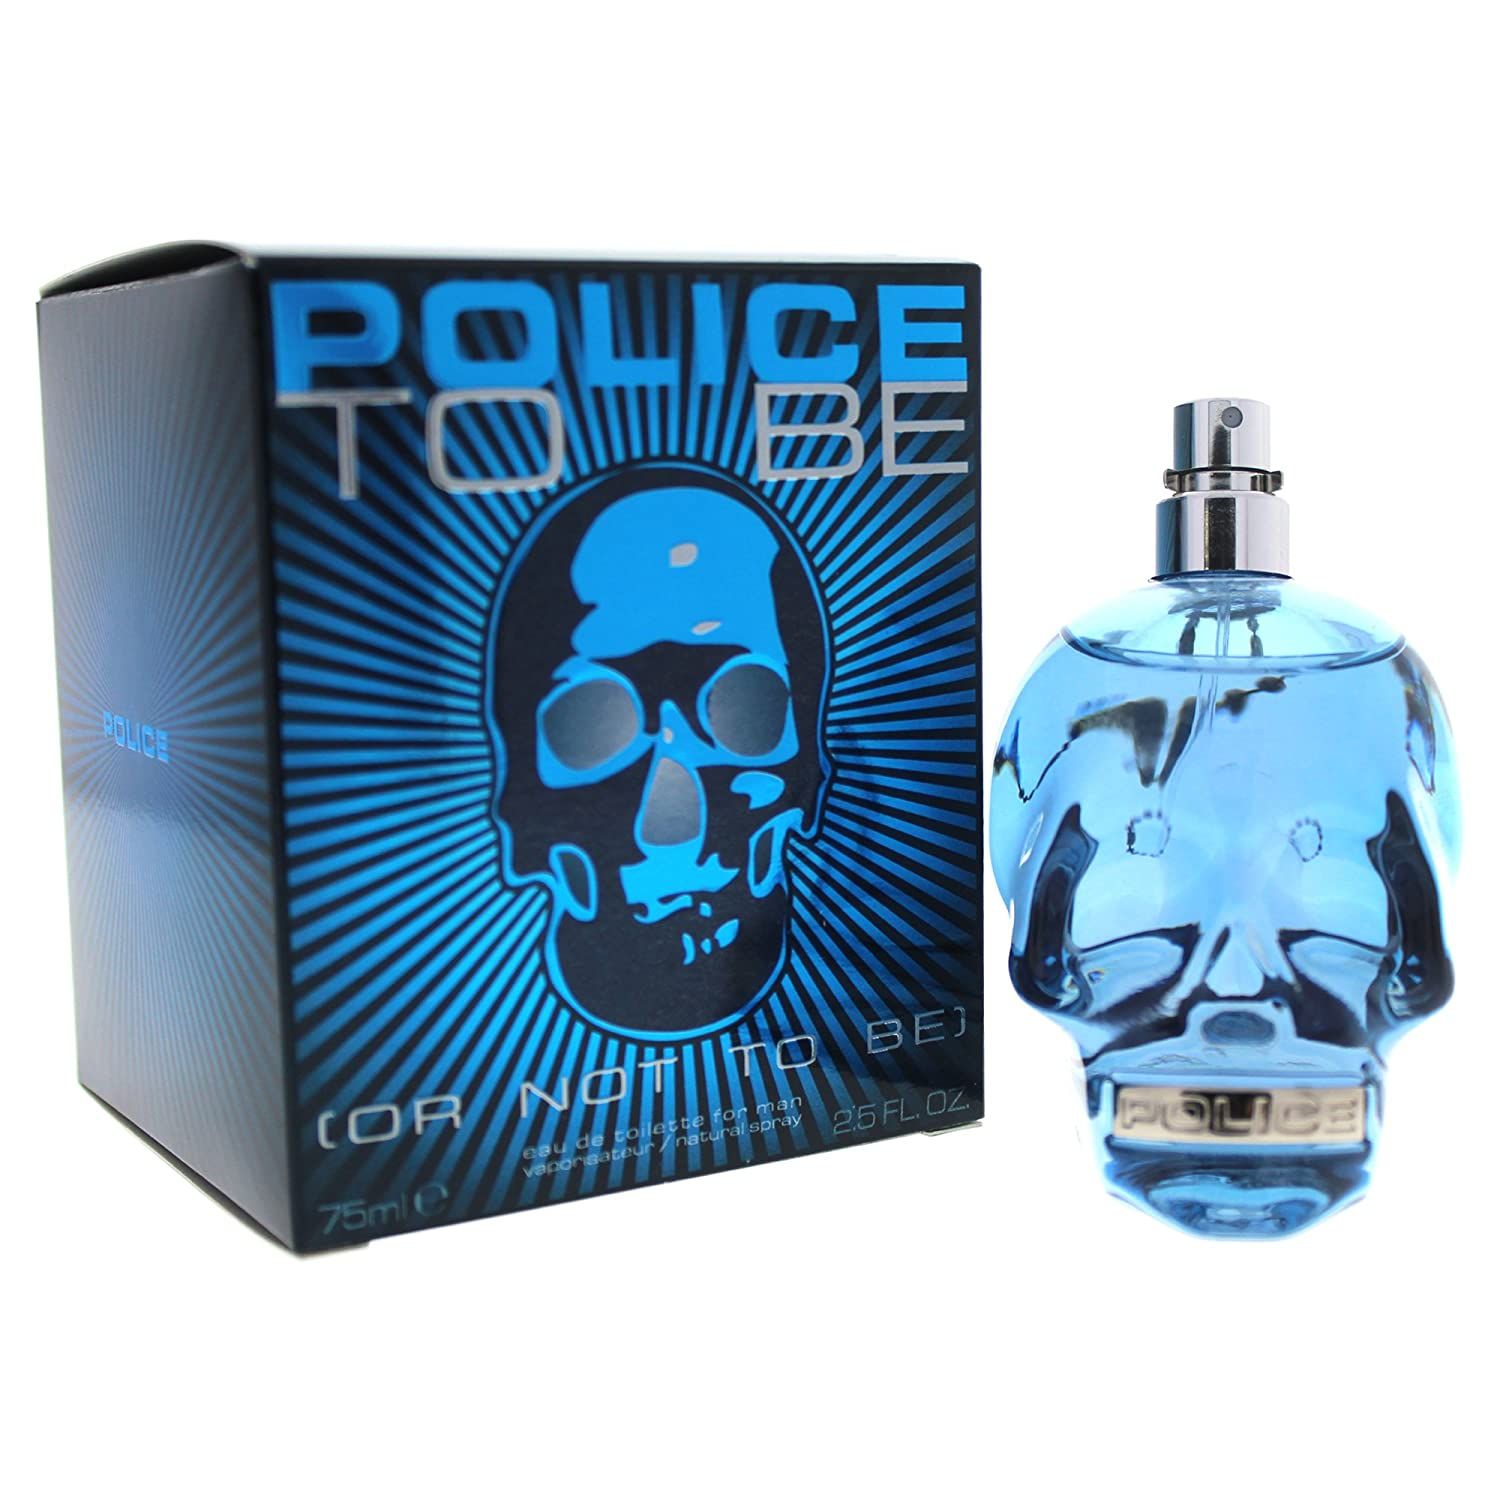 Eau Pour Homme De To Or Not Be Toilette Police 75ml wZukTOXiPl